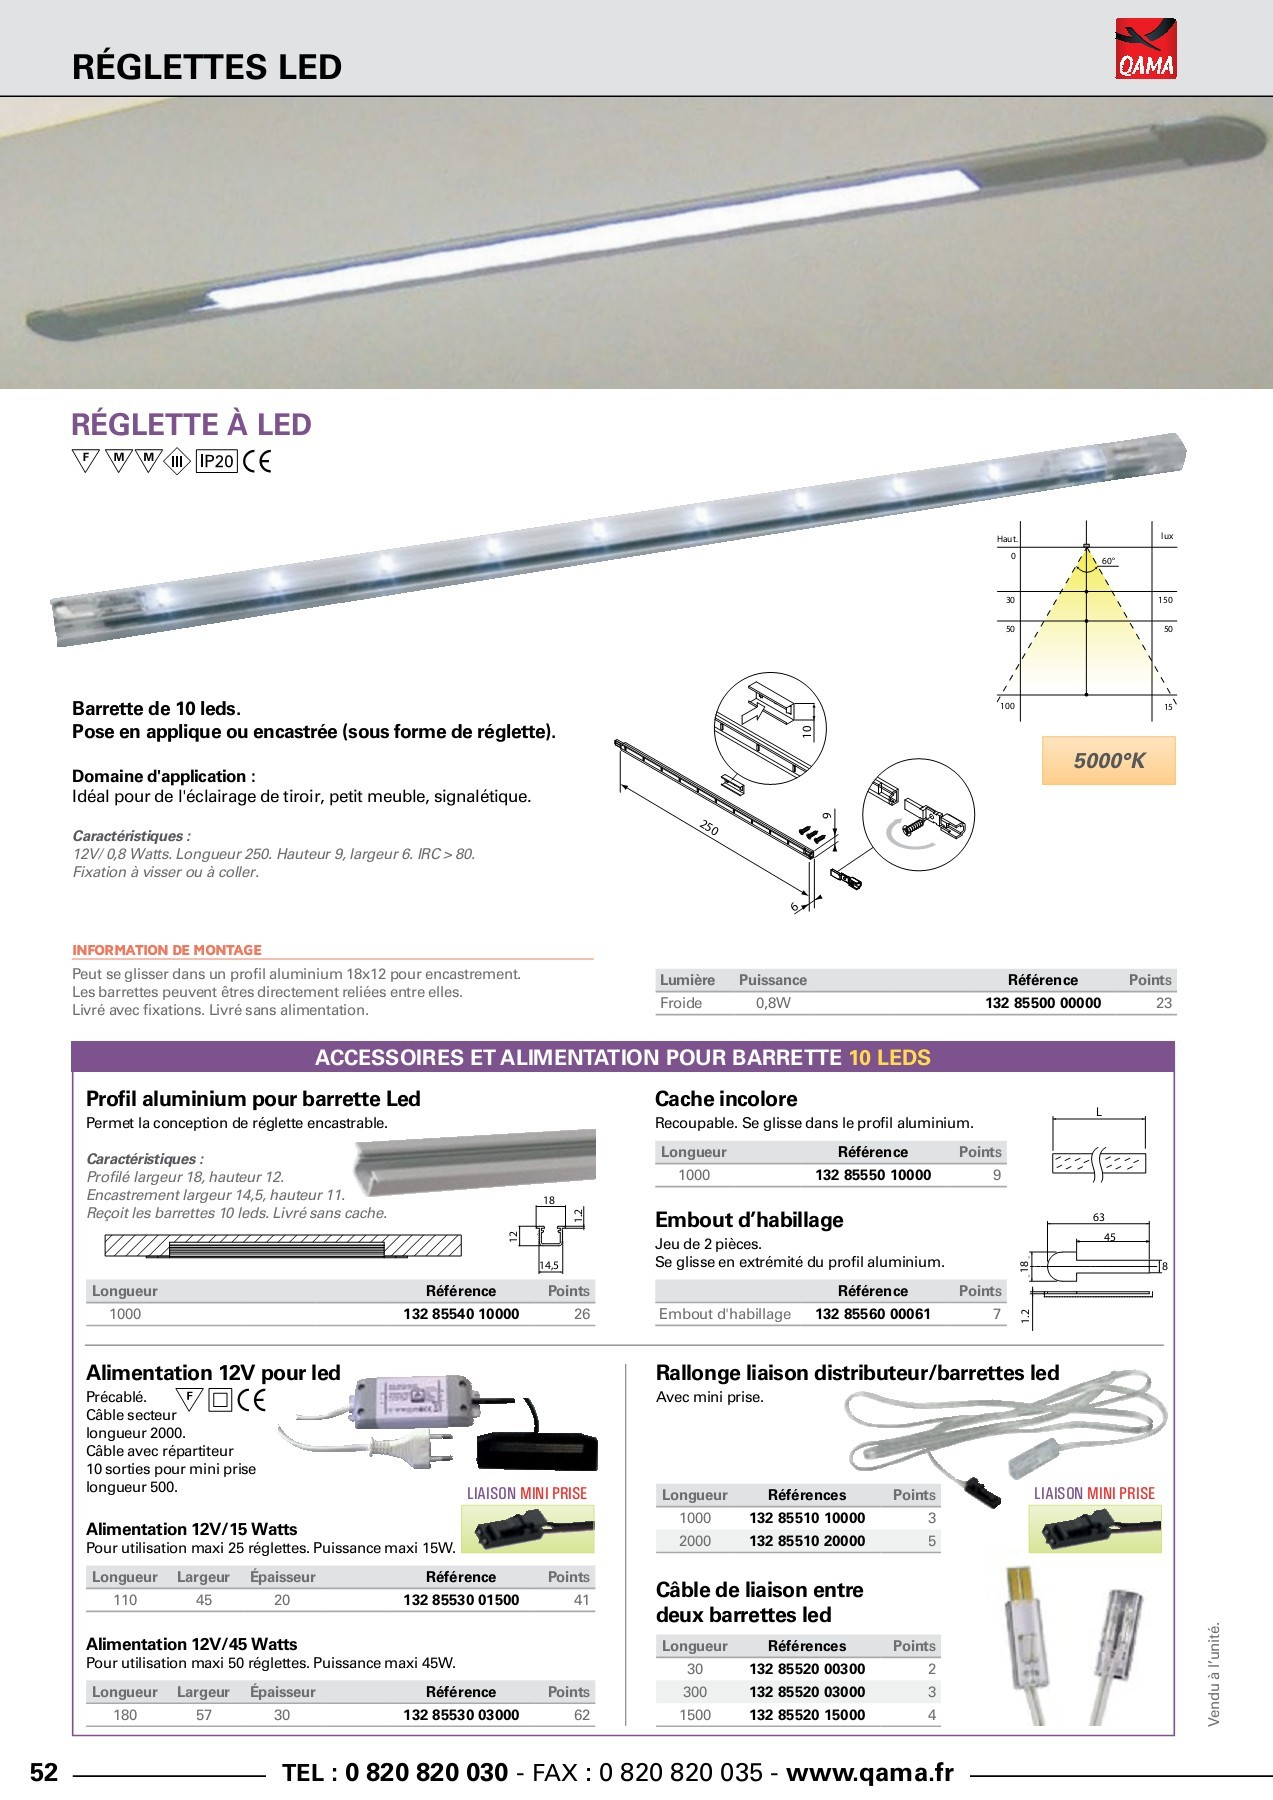 Barrette De Led Pour éclairage Eclairage Technologie Led Pages 51 100 Text Version Fliphtml5